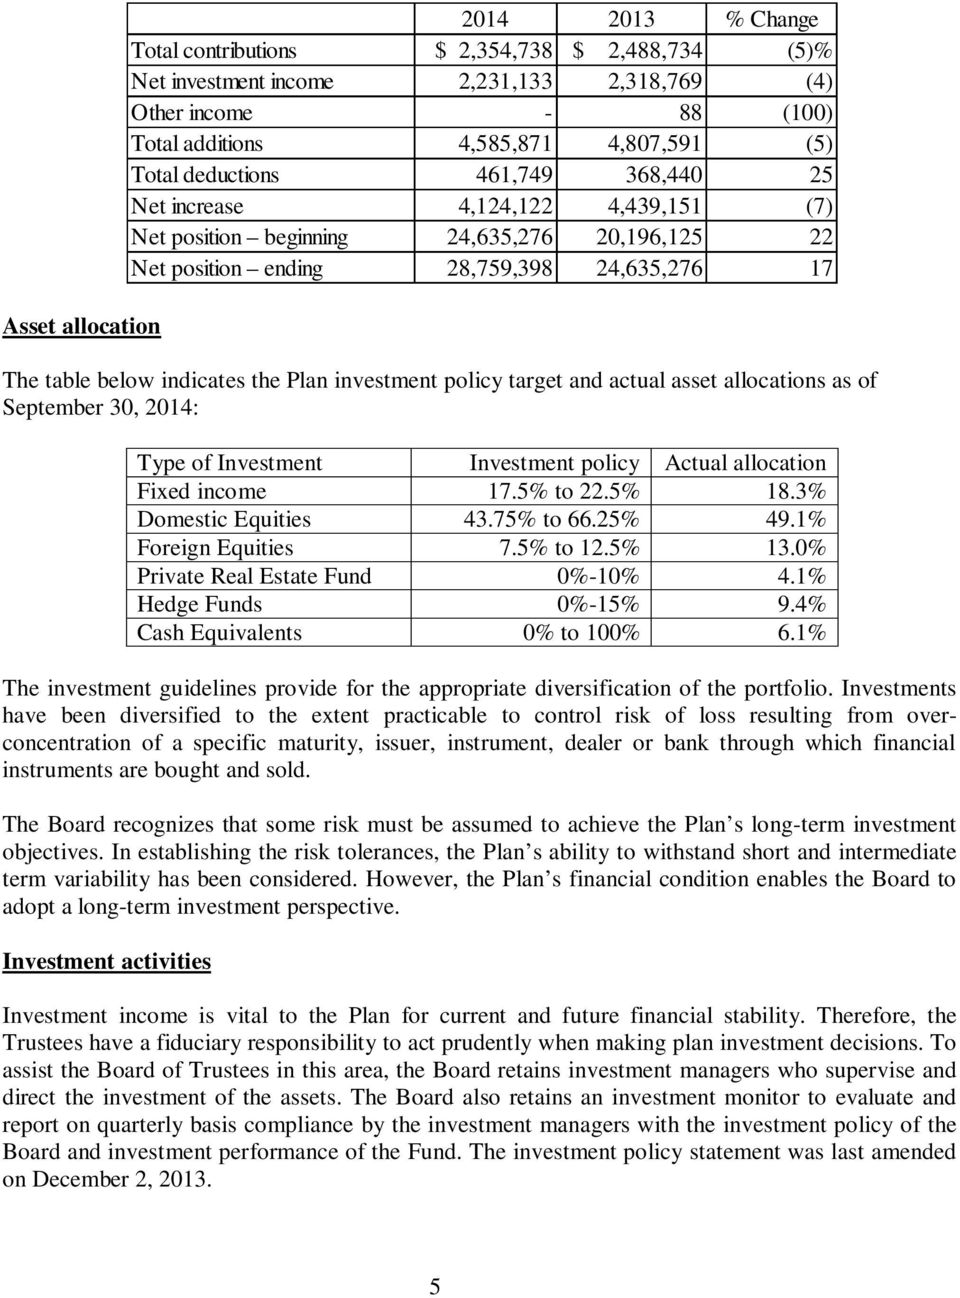 Plan investment policy target and actual asset allocations as of September 30, 2014: Type of Investment Investment policy Actual allocation Fixed income 17.5% to 22.5% 18.3% Domestic Equities 43.